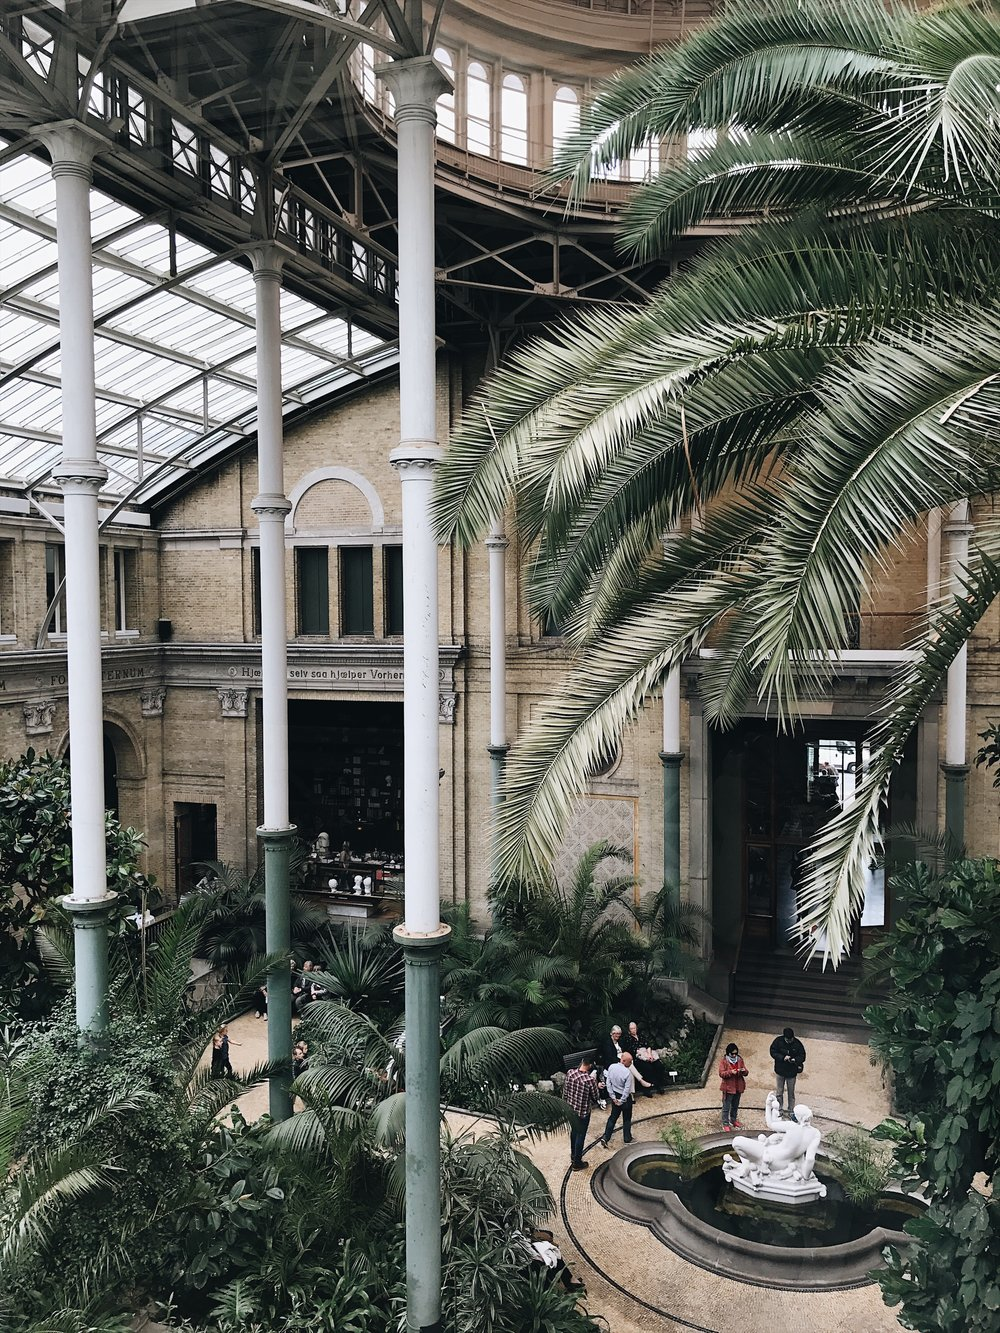 2. DO | GLYPTOTEKET